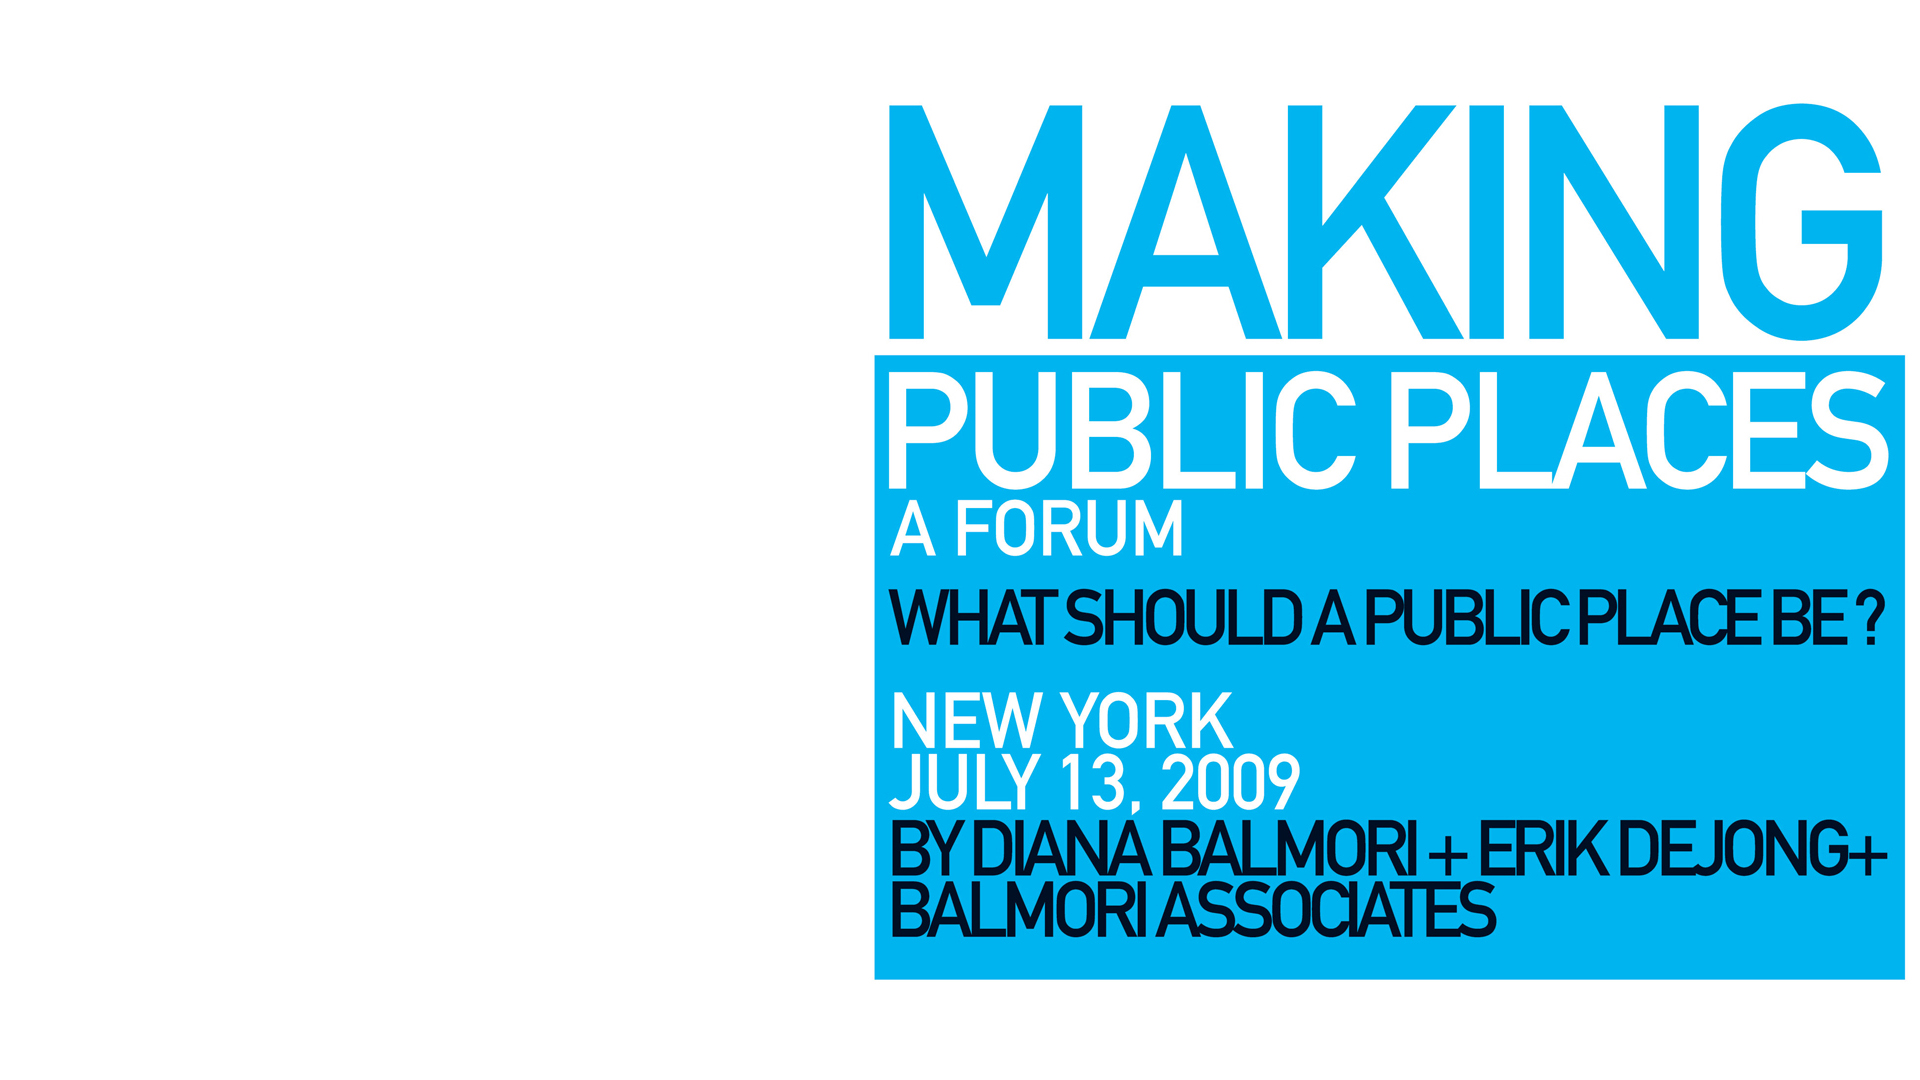 BA_making-public-places_coverspread_1080.jpg